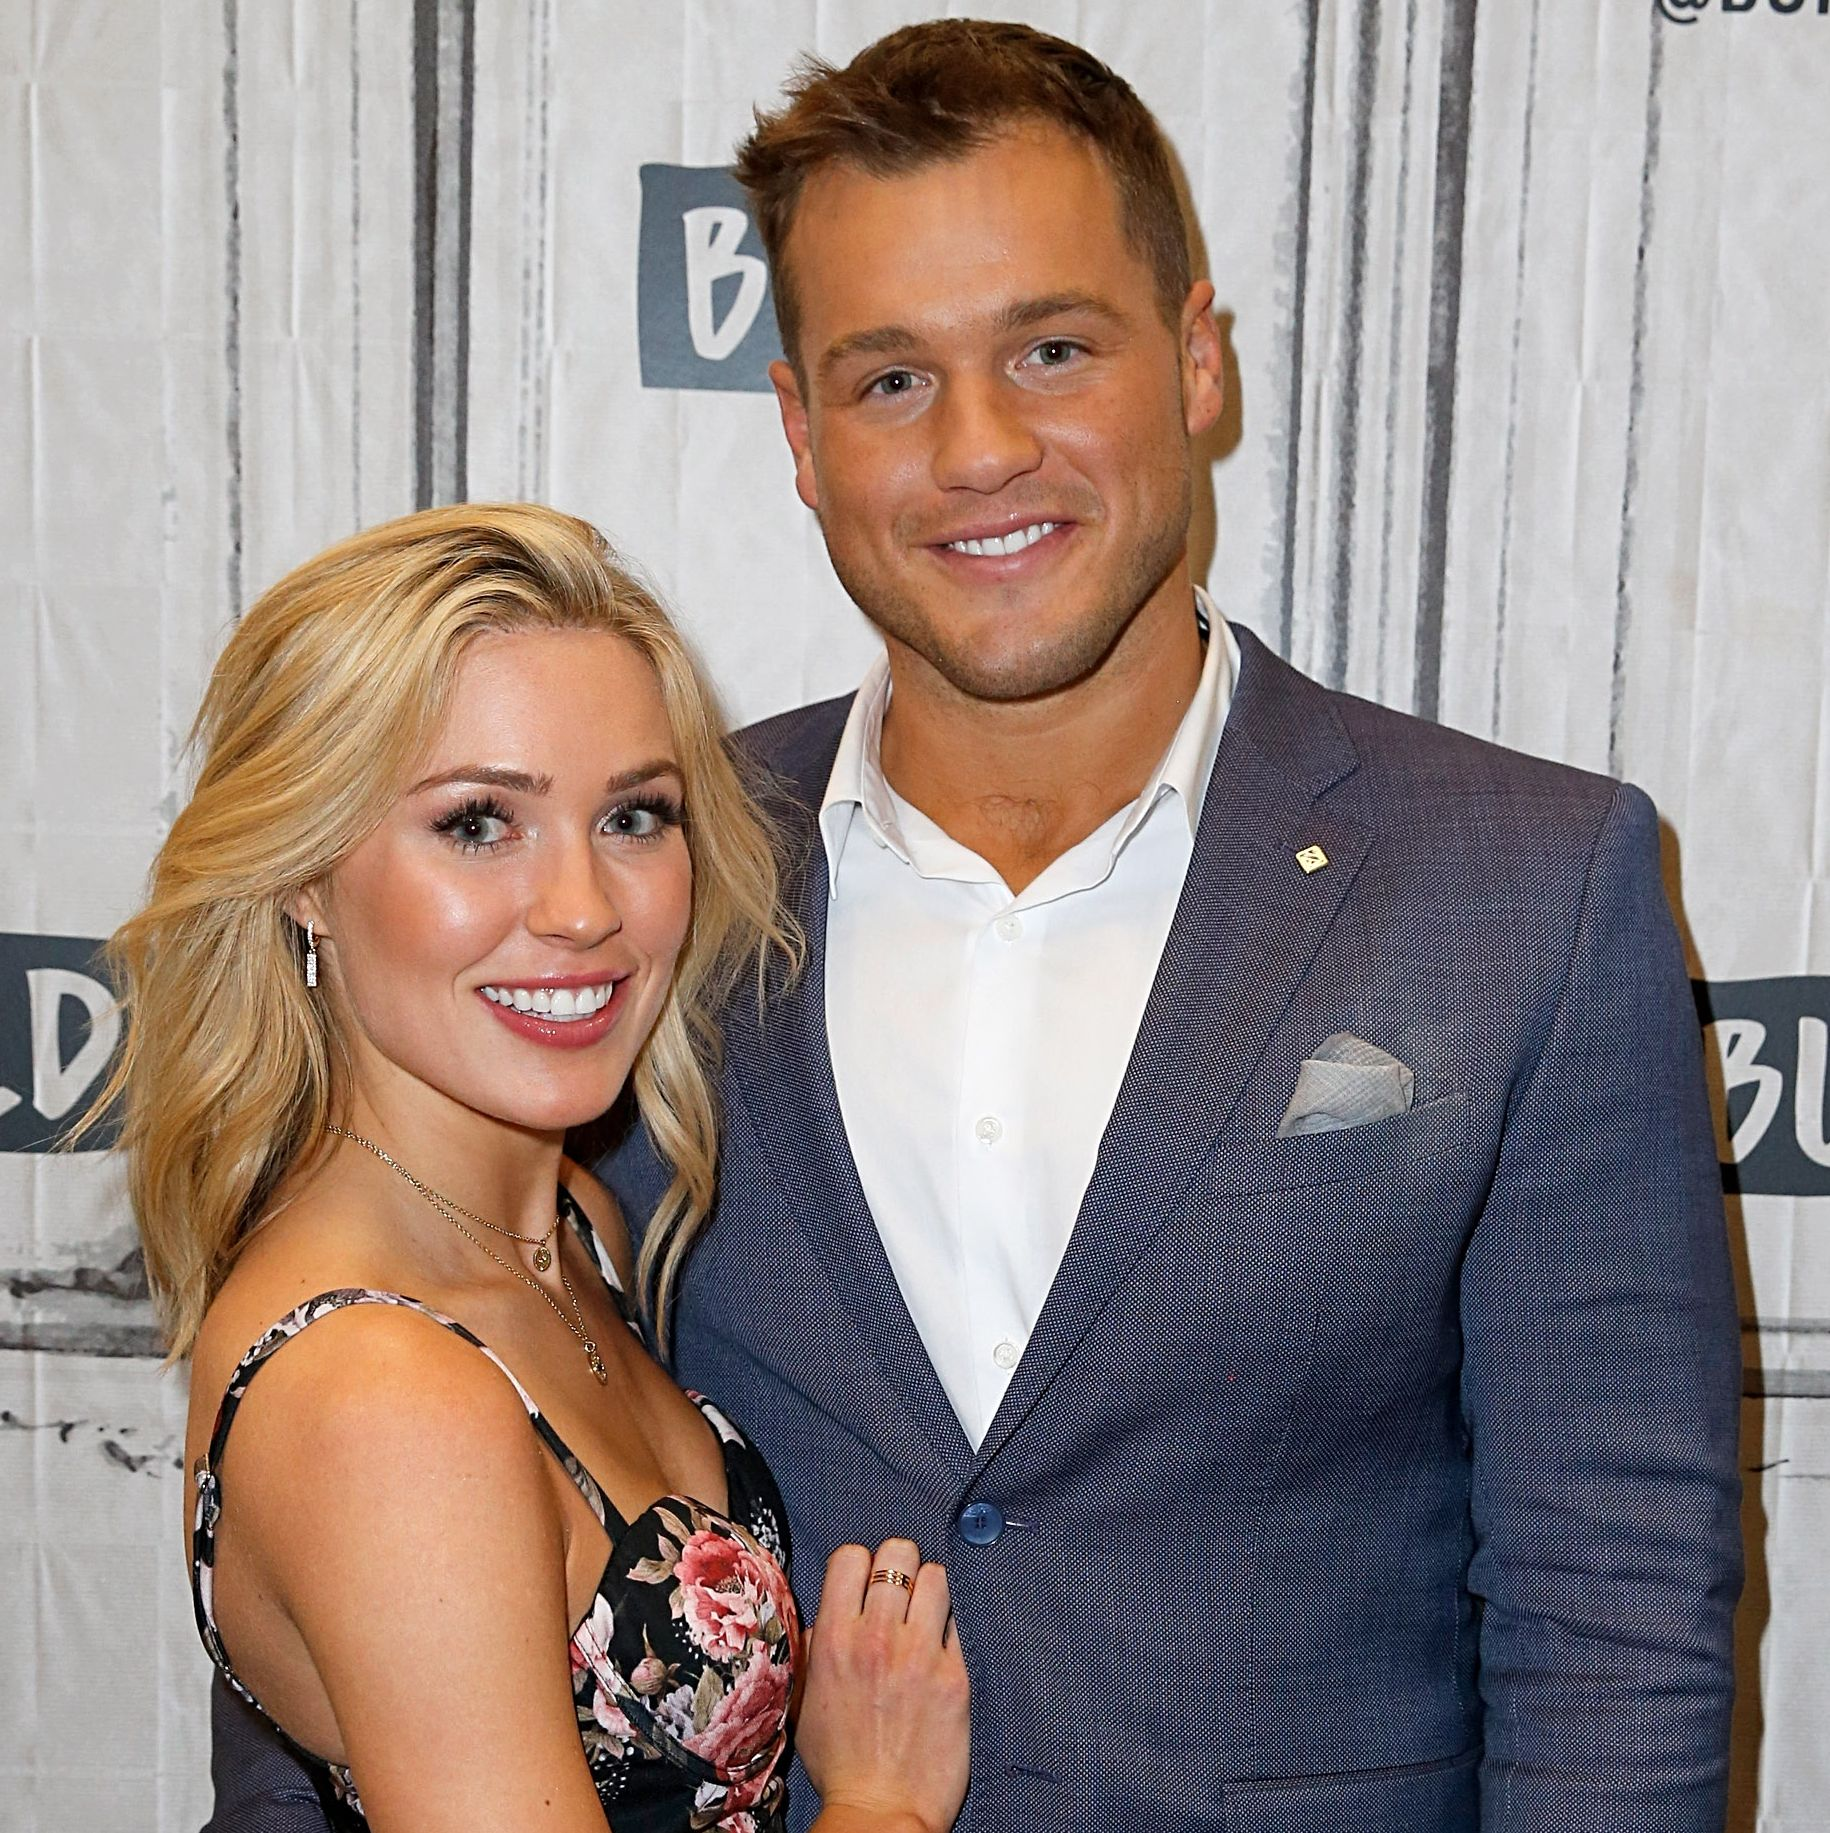 Does 'Bachelor' Couple Colton Underwood and Cassie Randolph Look Totally Awkward in This Pic?